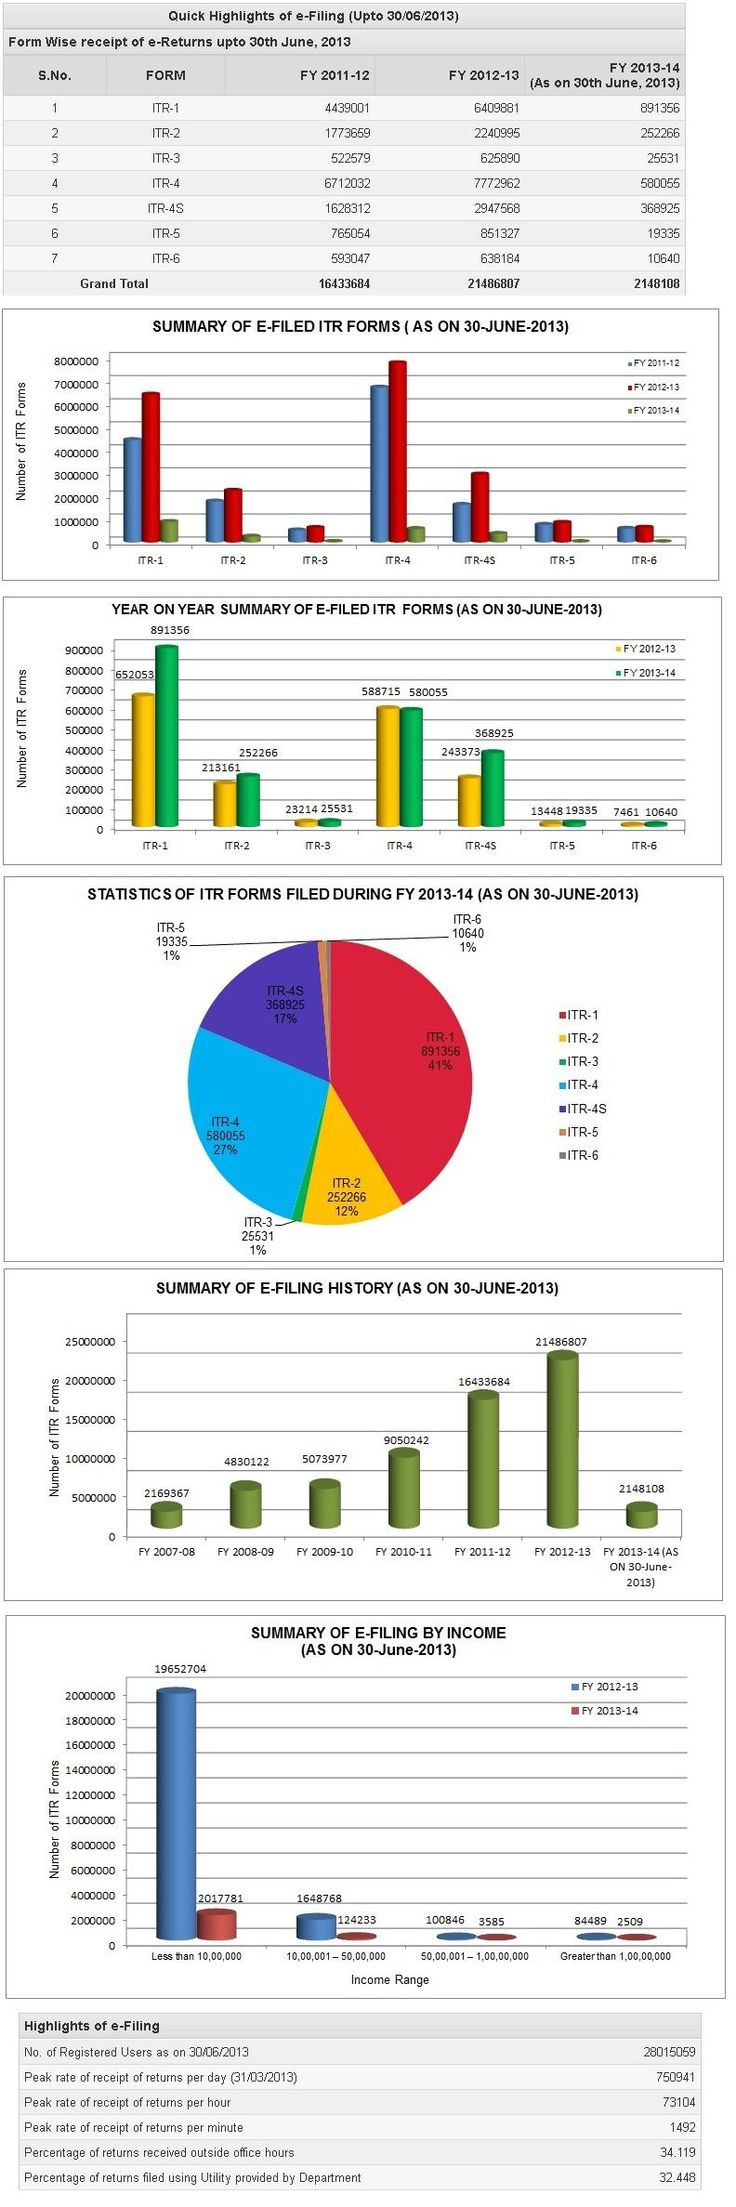 Statistics of E-filing till 30 Jun 2013 from Income tax efiling site